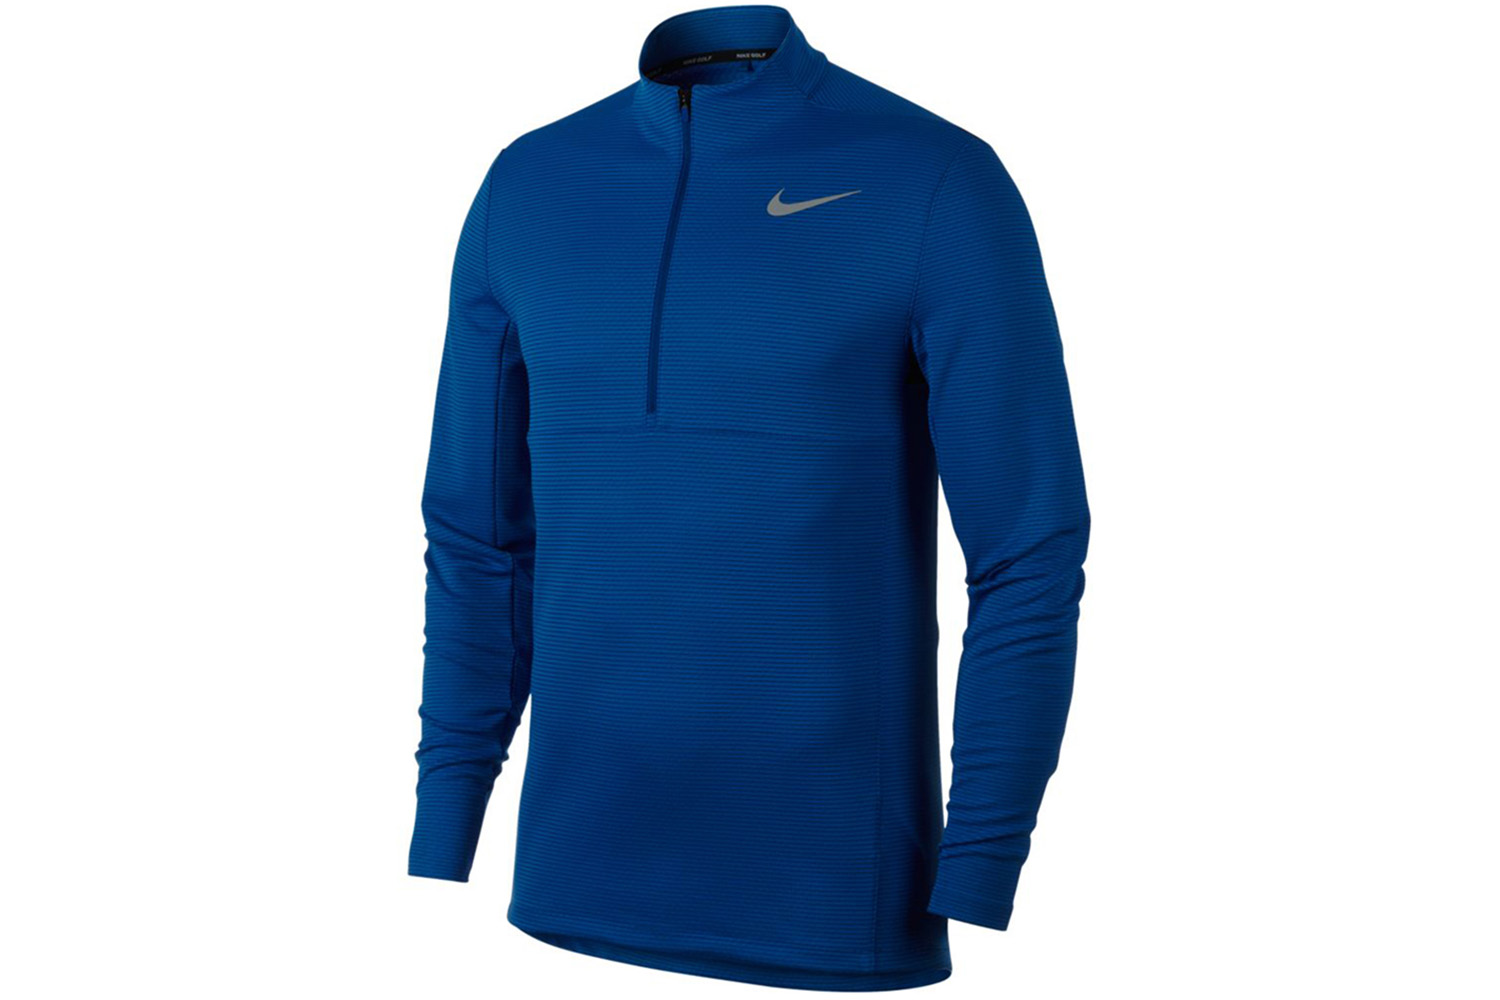 Nike golf aeroreact 1 2 zip windshirt from american golf for Housse zip collection captur